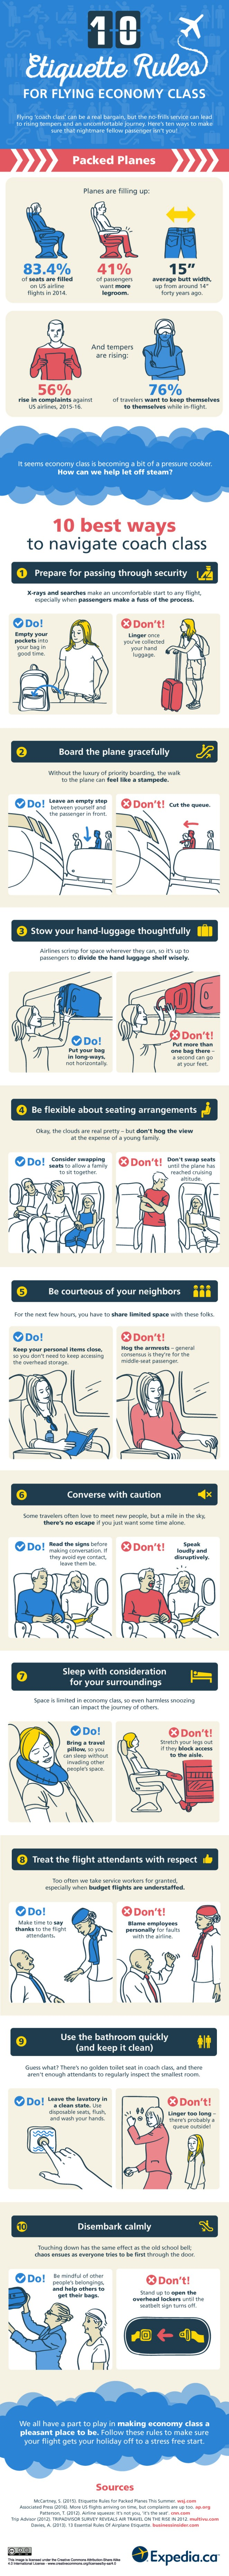 etiquette-rules-flying-economy